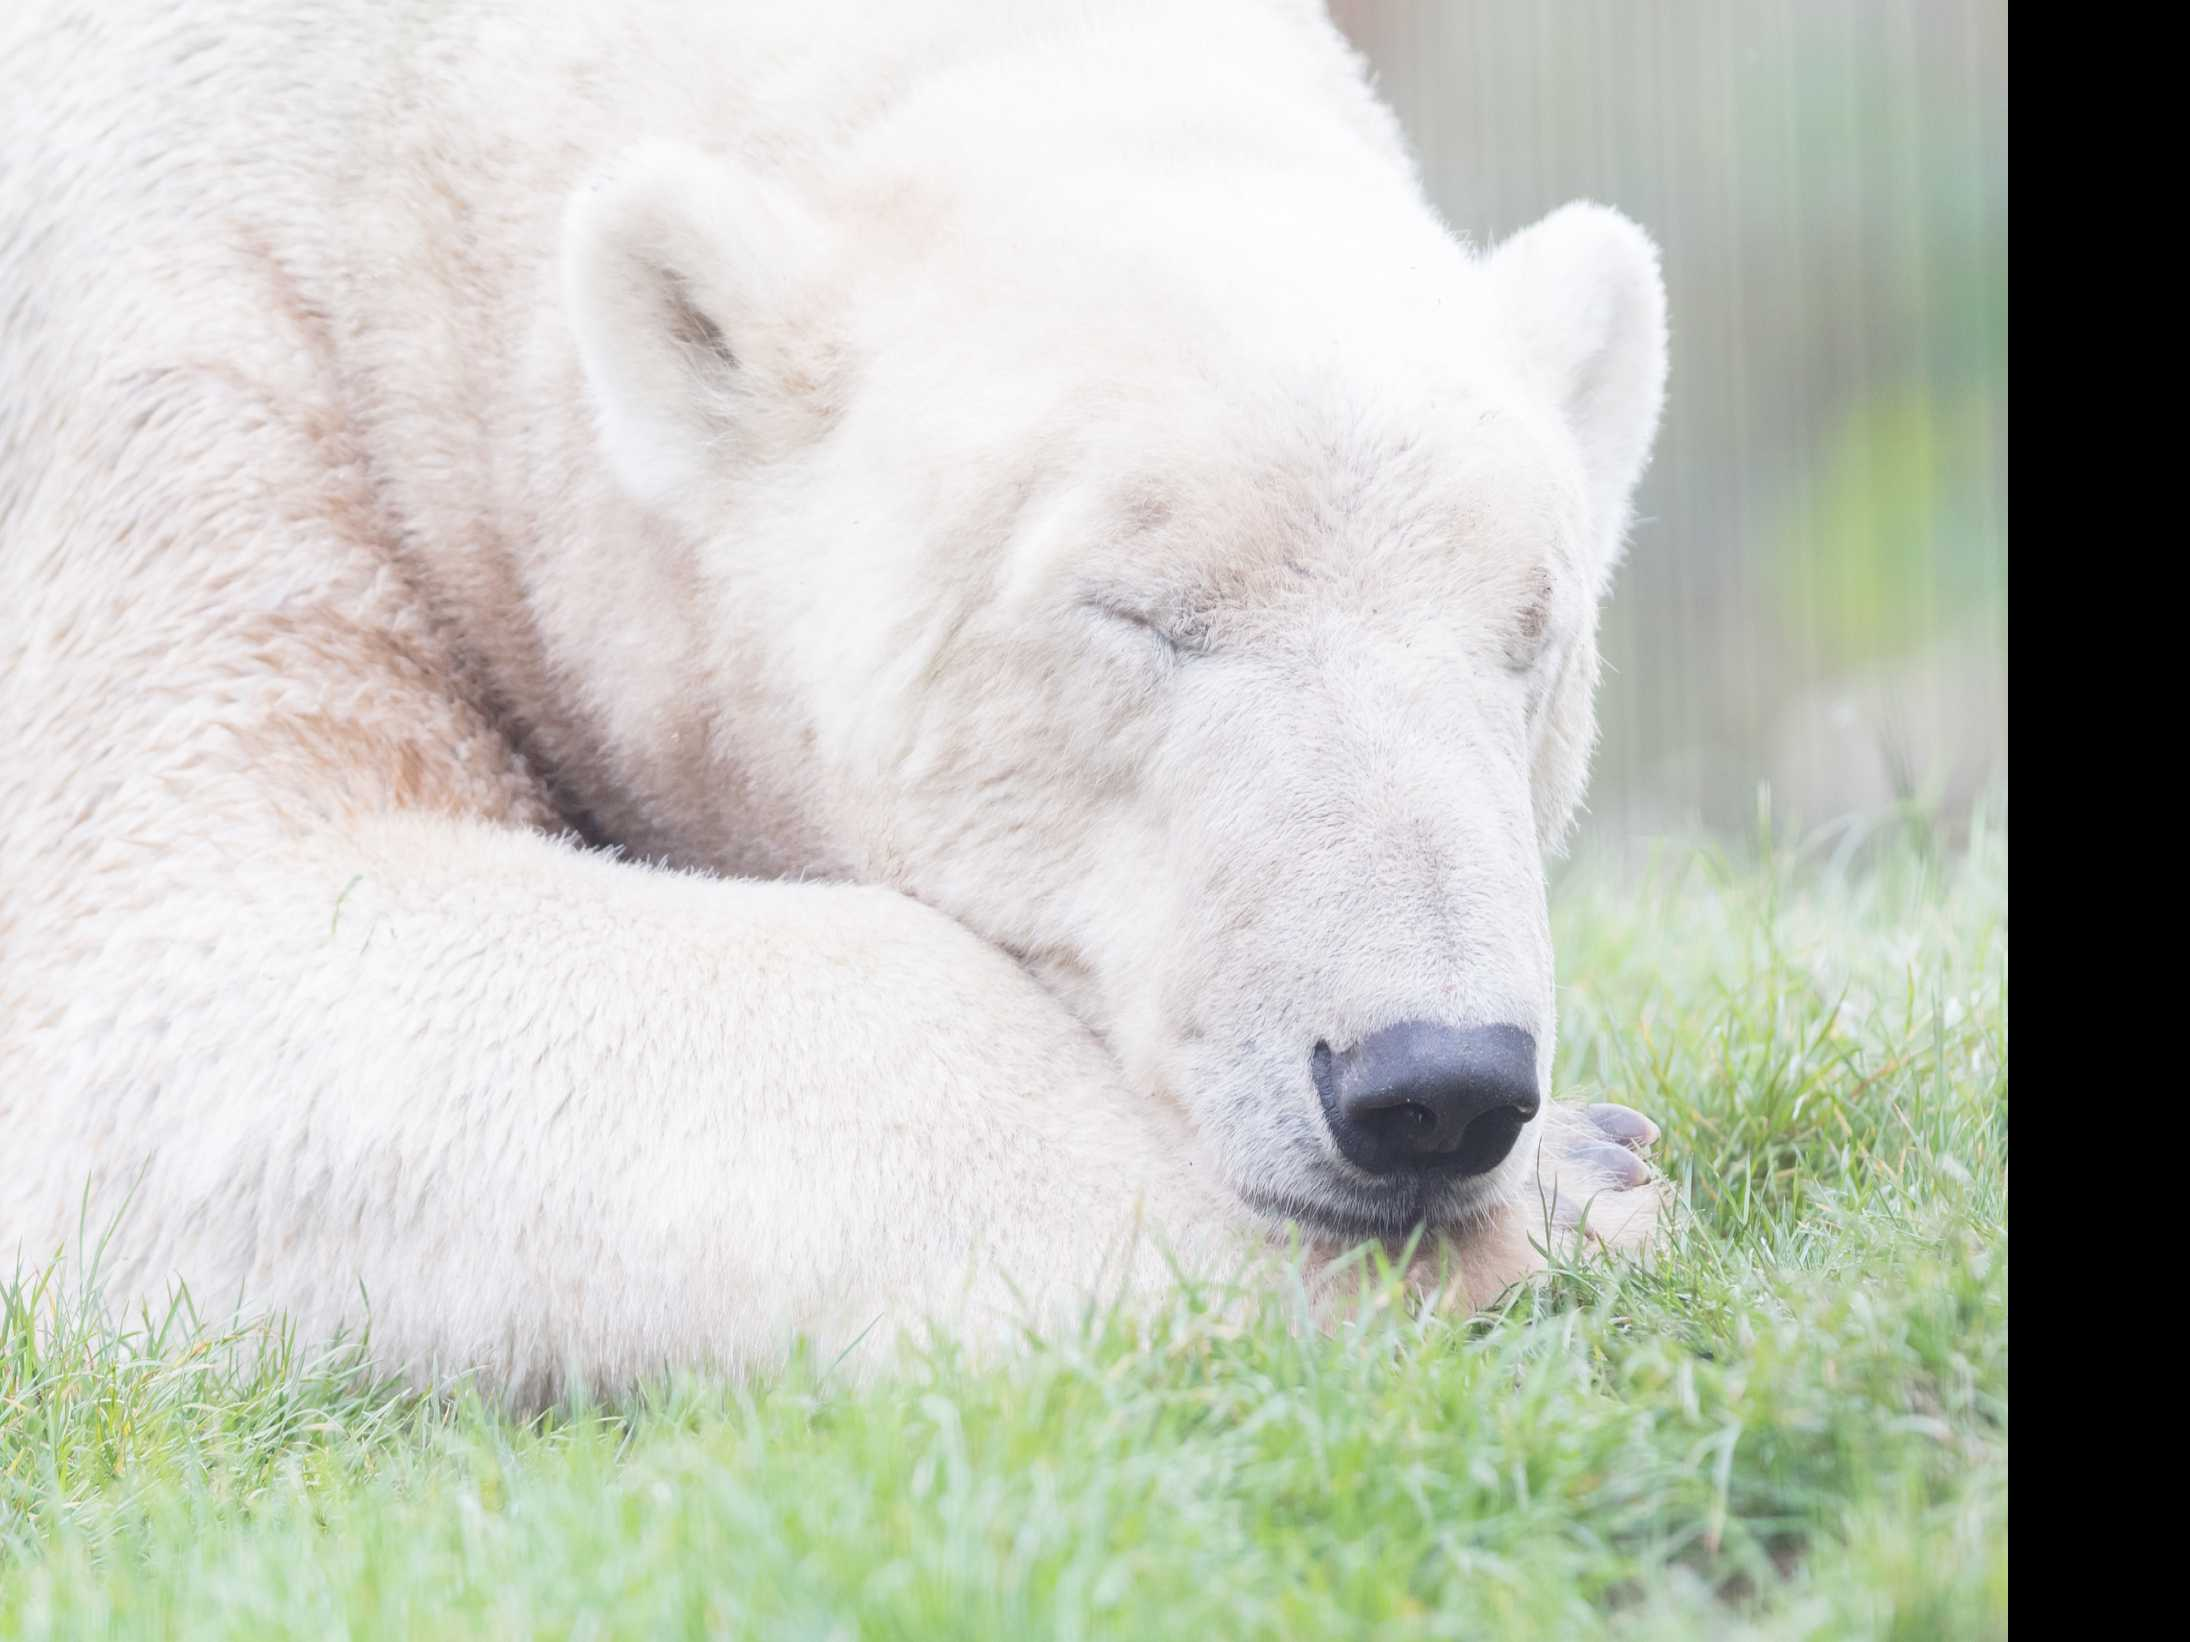 After Being Separated from Partner, SeaWorld Polar Bear Dies